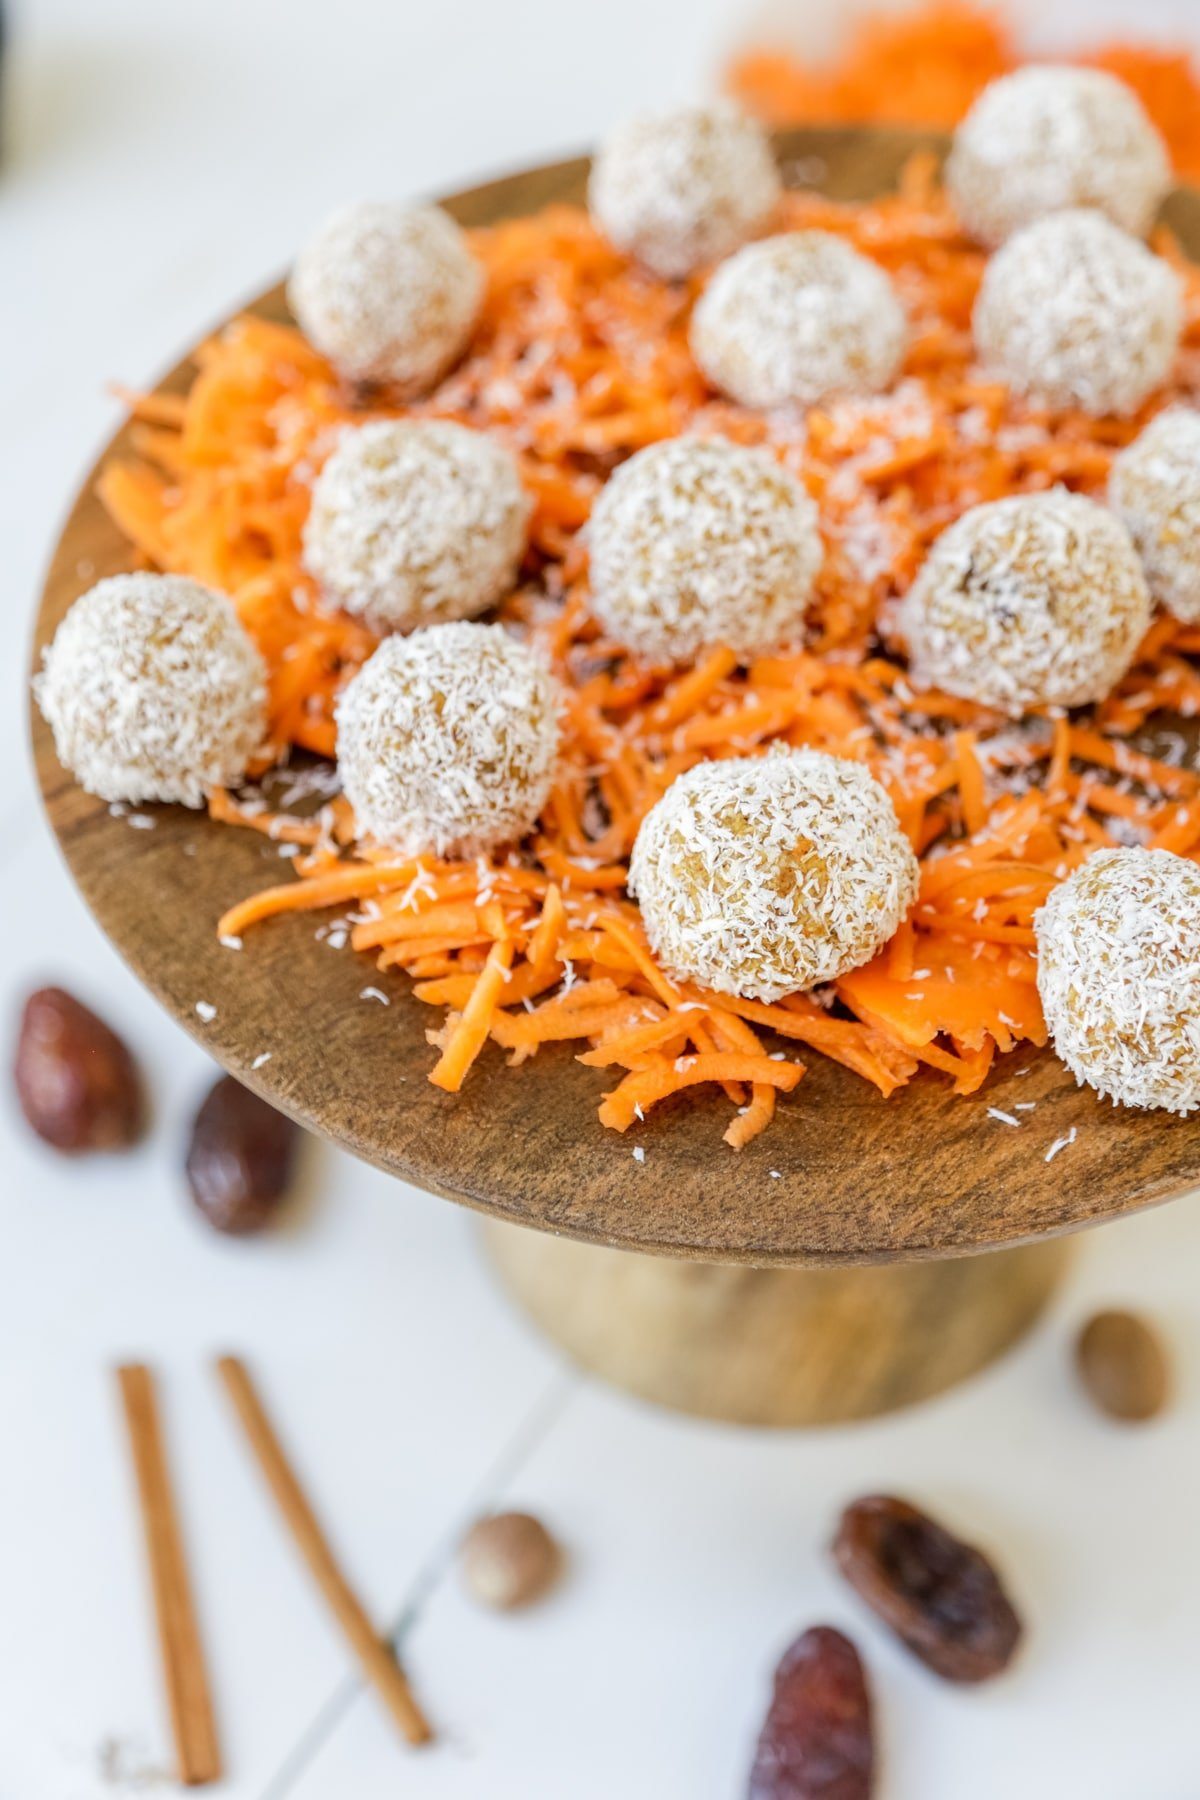 Carrot cake balls rolled in coconut sitting on grated carrots on a wooden cake stand.